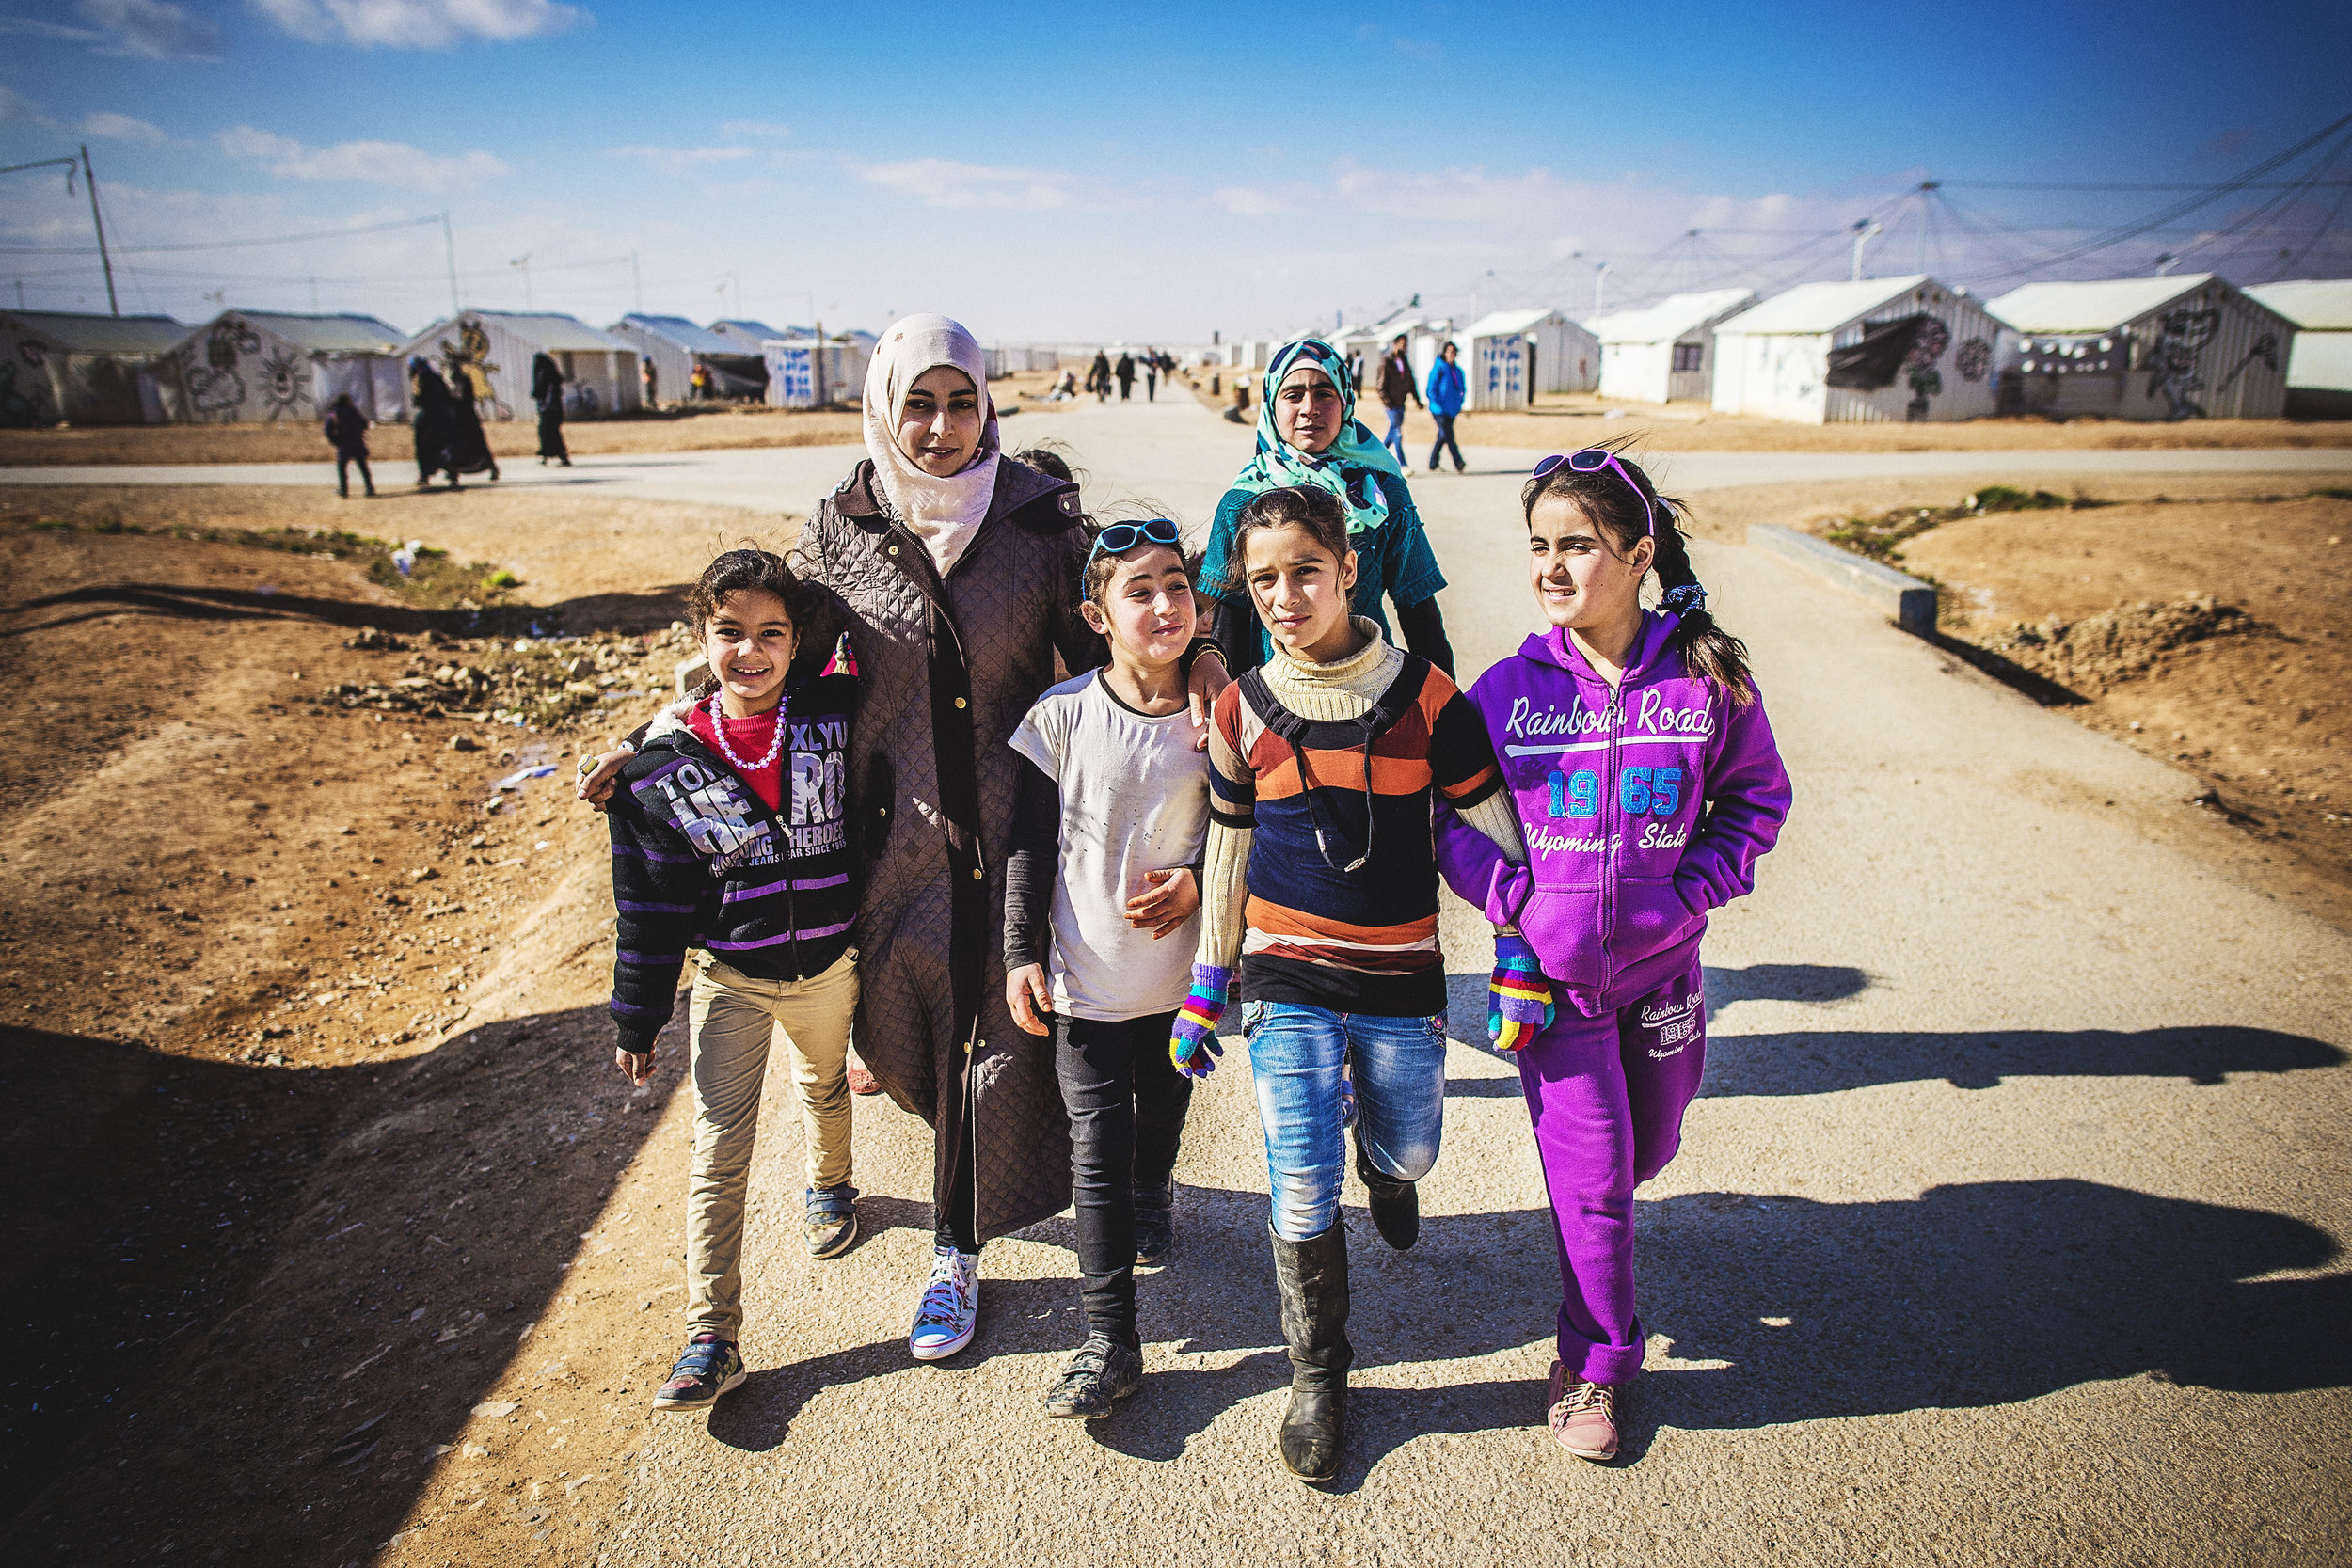 photo:  Sean Sheridan  for Mercy Corps, Azraq refugee camp for Syrians, Jordan. Yasmin, 21, a facilitator at Makani Center (a youth safe place) escaped Syria after her family's home in Daraa was bombed. She is pictured here with refugee children who attend the center in order to have a safe place to play and retain a valuable sense of routine.